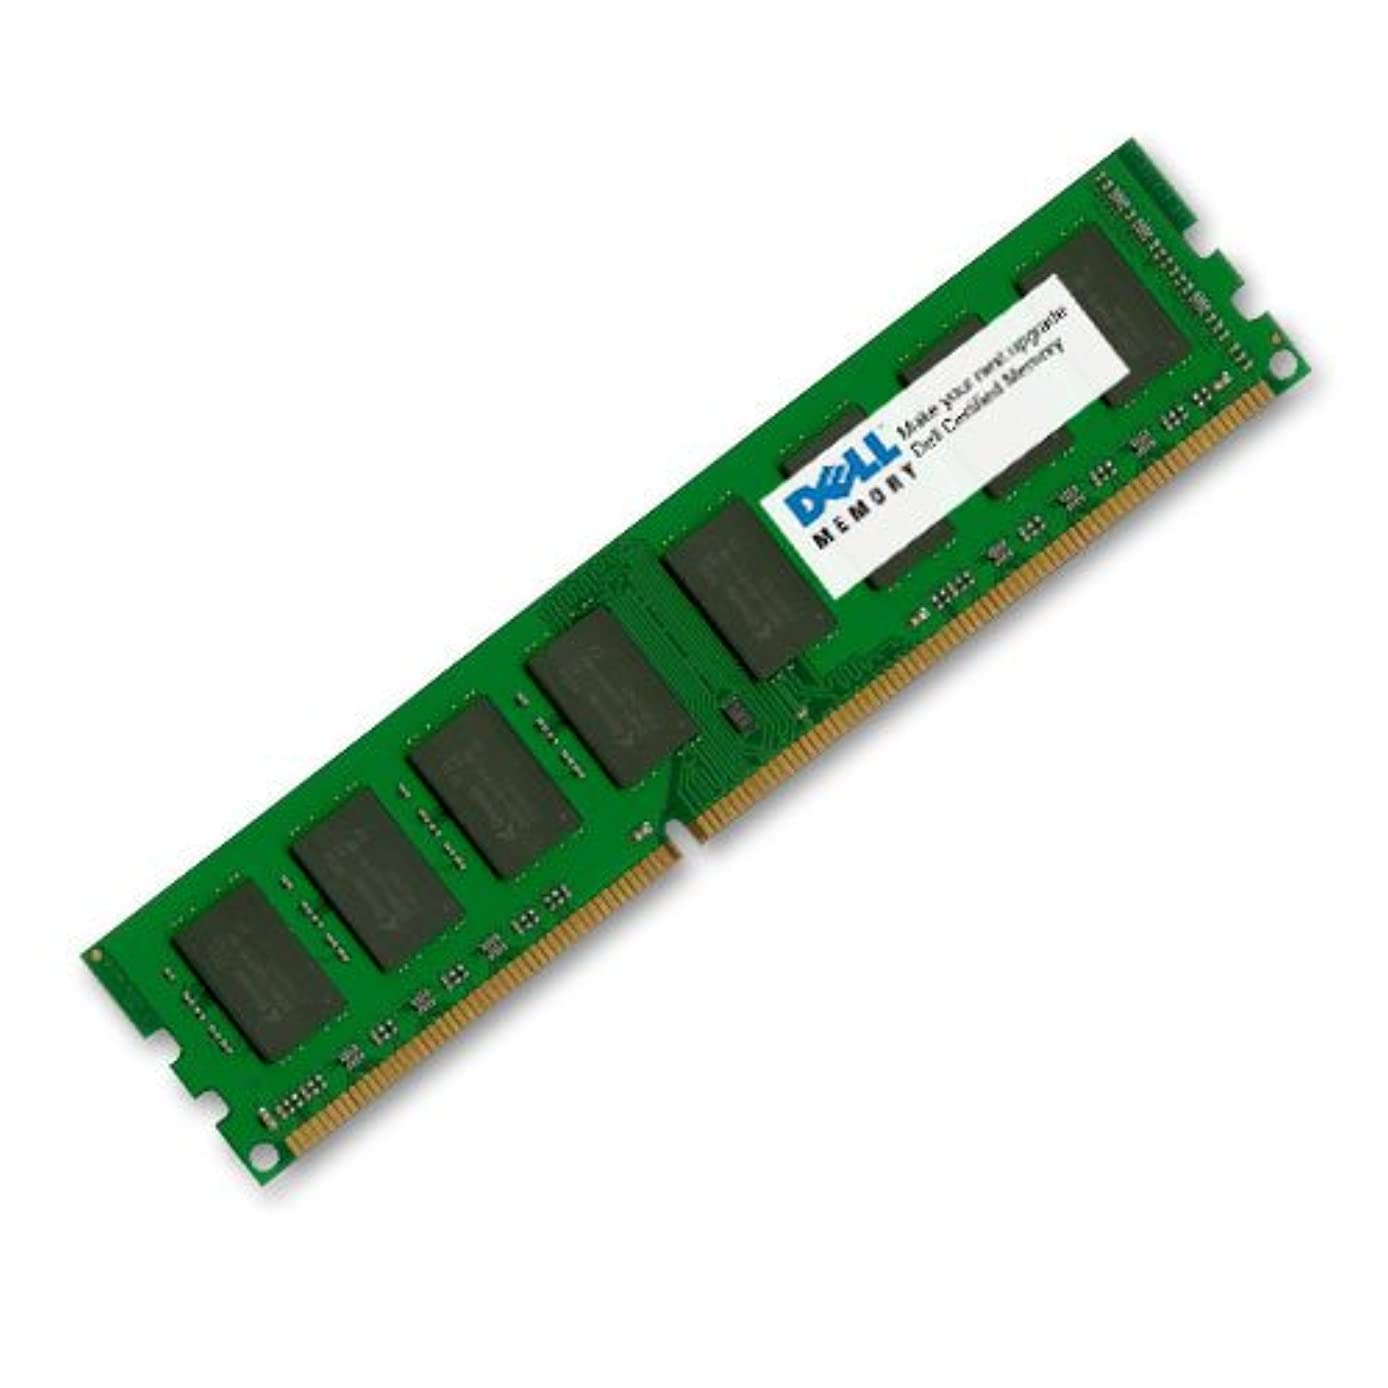 4 GB Dell New Certified Memory RAM Upgrade for Dell Precision T1500 WorkStation SNPP382HC/4G A3132545